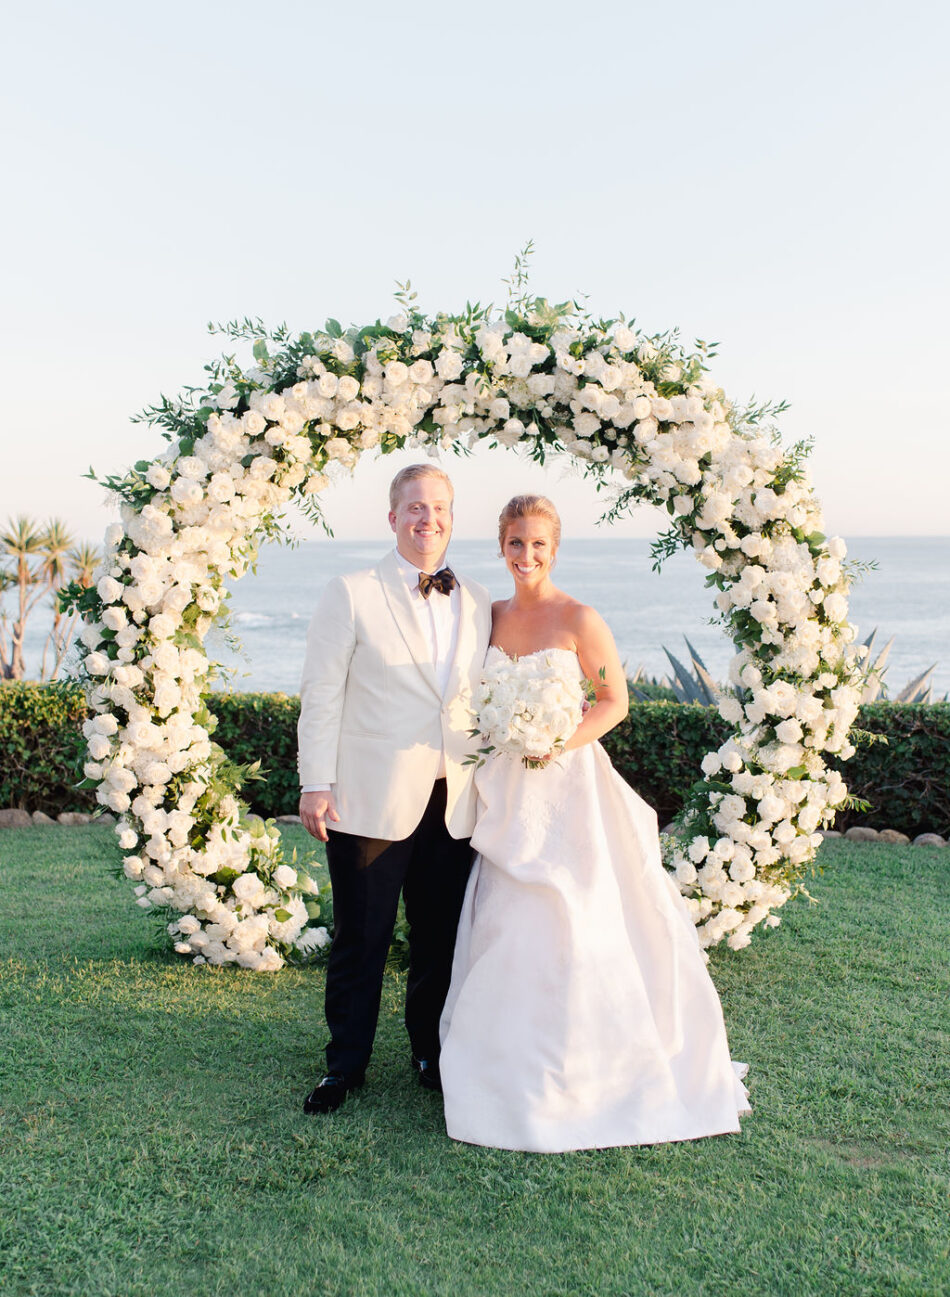 newlyweds, floral arch, ceremony arch, gorgeous oceanfront wedding, floral design, florist, wedding florist, wedding flowers, orange county weddings, orange county wedding florist, orange county florist, orange county floral design, flowers by cina